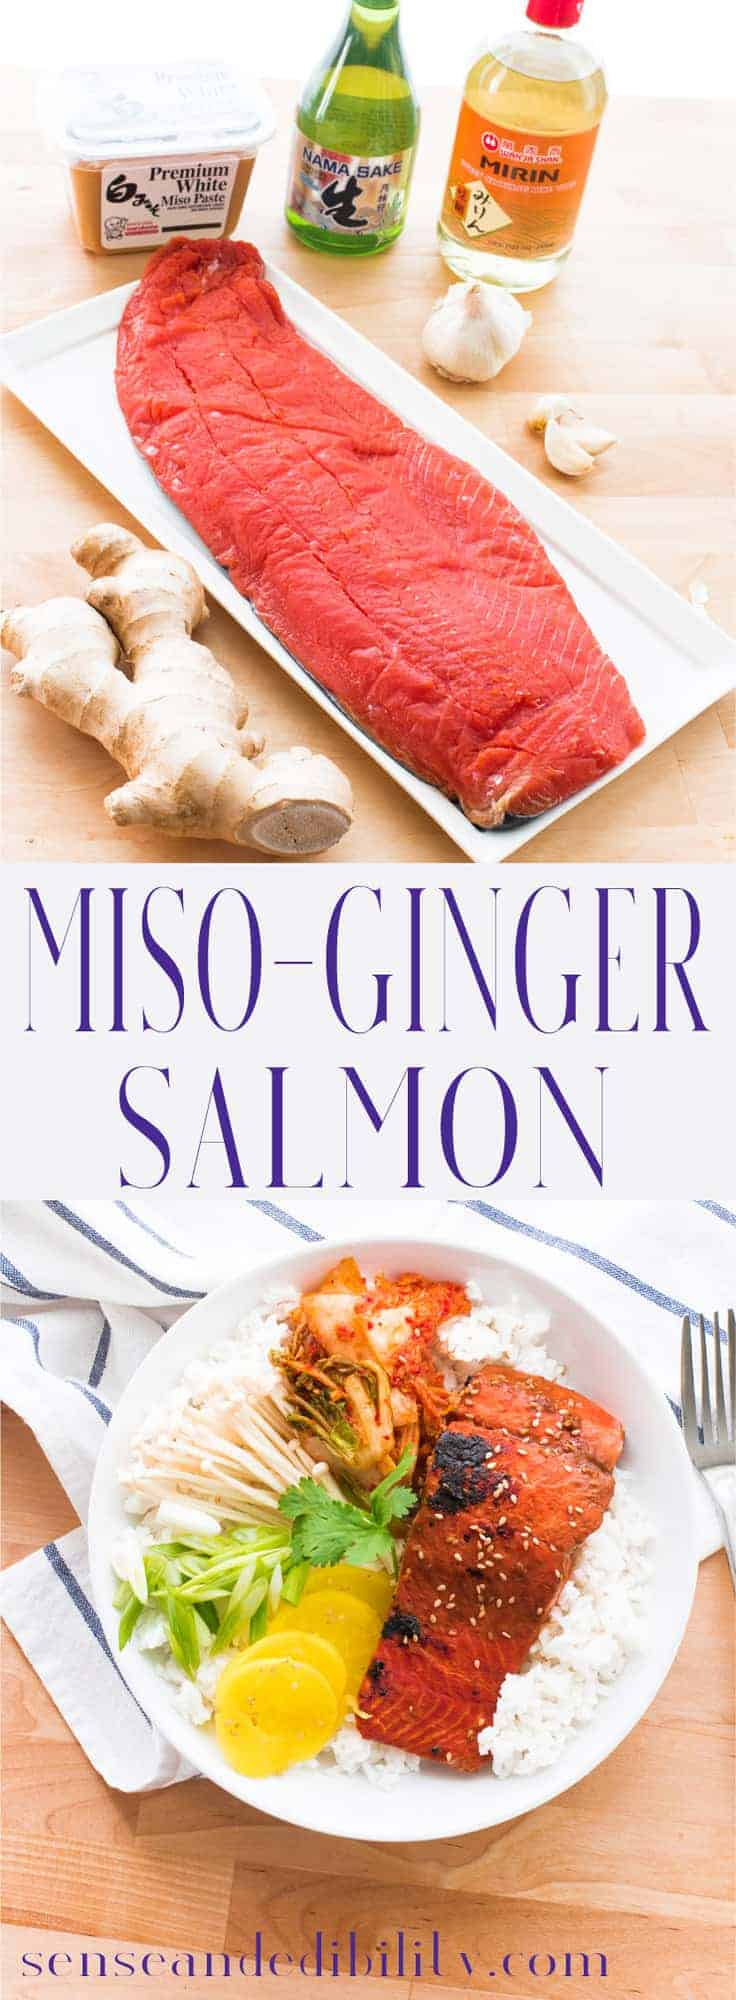 Miso and ginger create a quick marinade for wild salmon. Grill, pan-sear, bake, or broil these umami-packed filets for a quick, easy meal. #misoginger #salmon #quickmeals #asianrecipe #salmonmeal #salmonrecipe #mirin #sake #whitemiso #cookwithmiso #seafoodrecipe #dinner #entree #panseared via @ediblesense